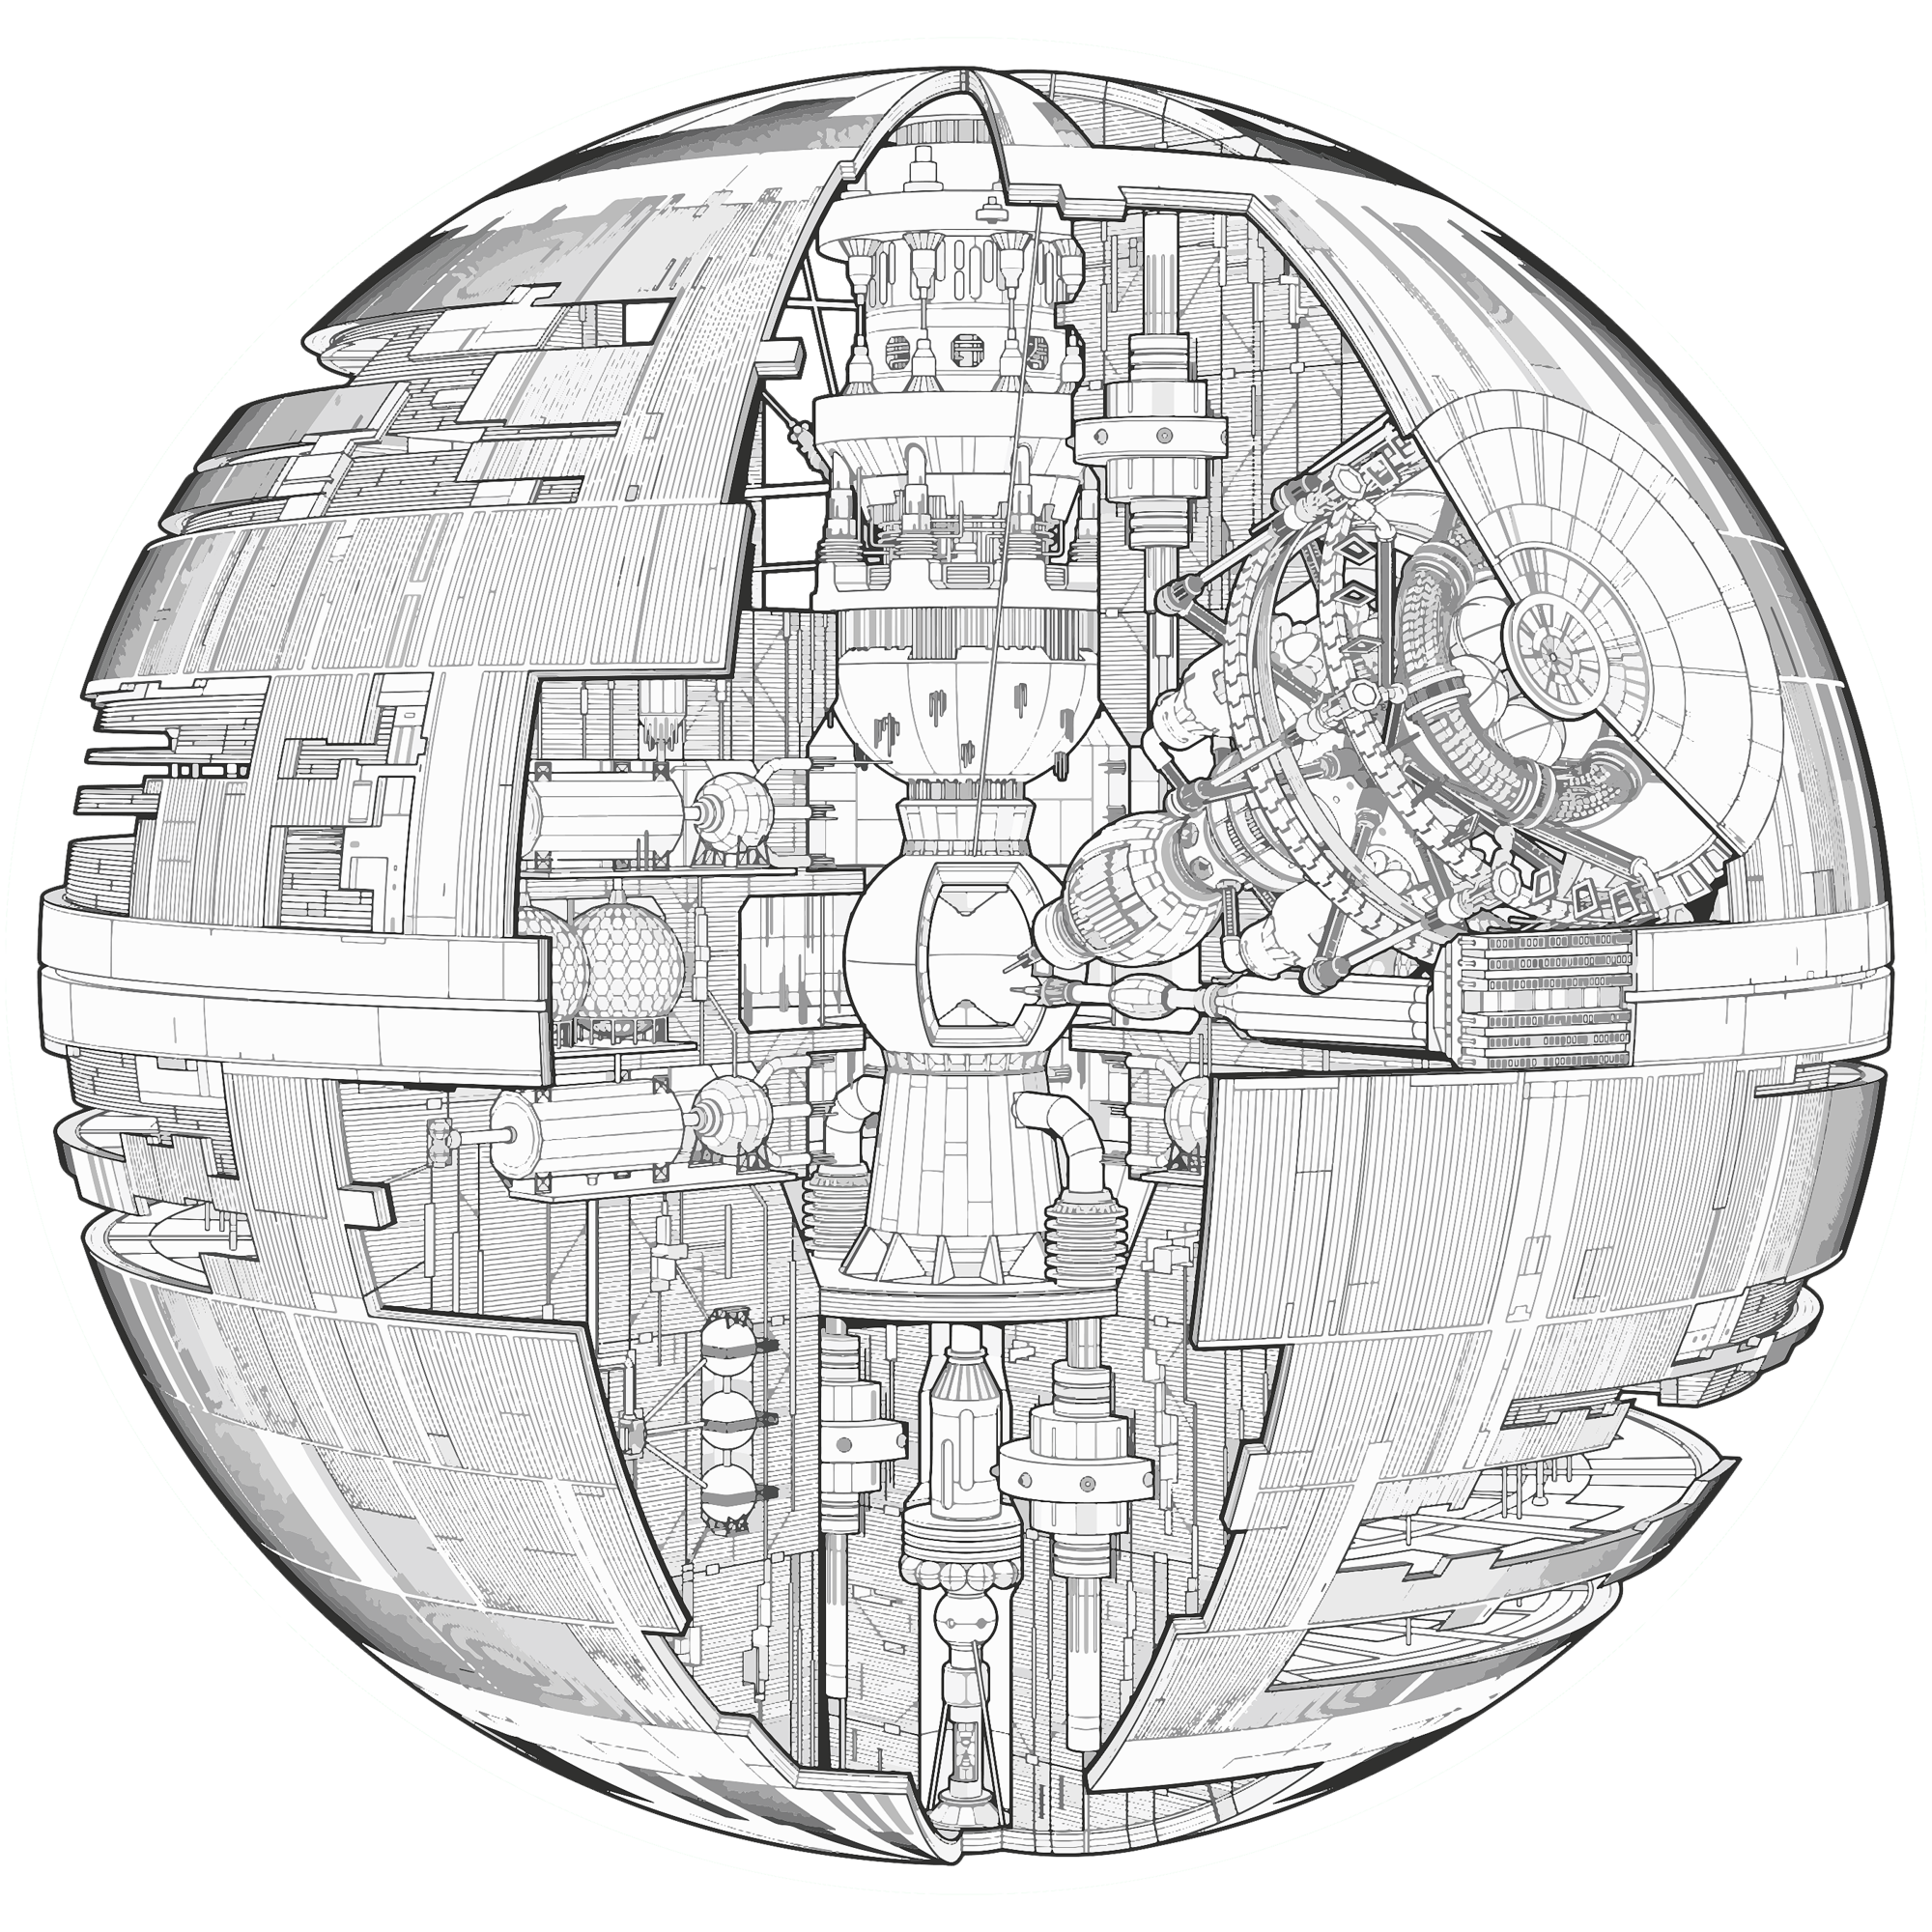 Starwars death star clipart clip art transparent Death Star Drawing at GetDrawings.com | Free for personal use Death ... clip art transparent